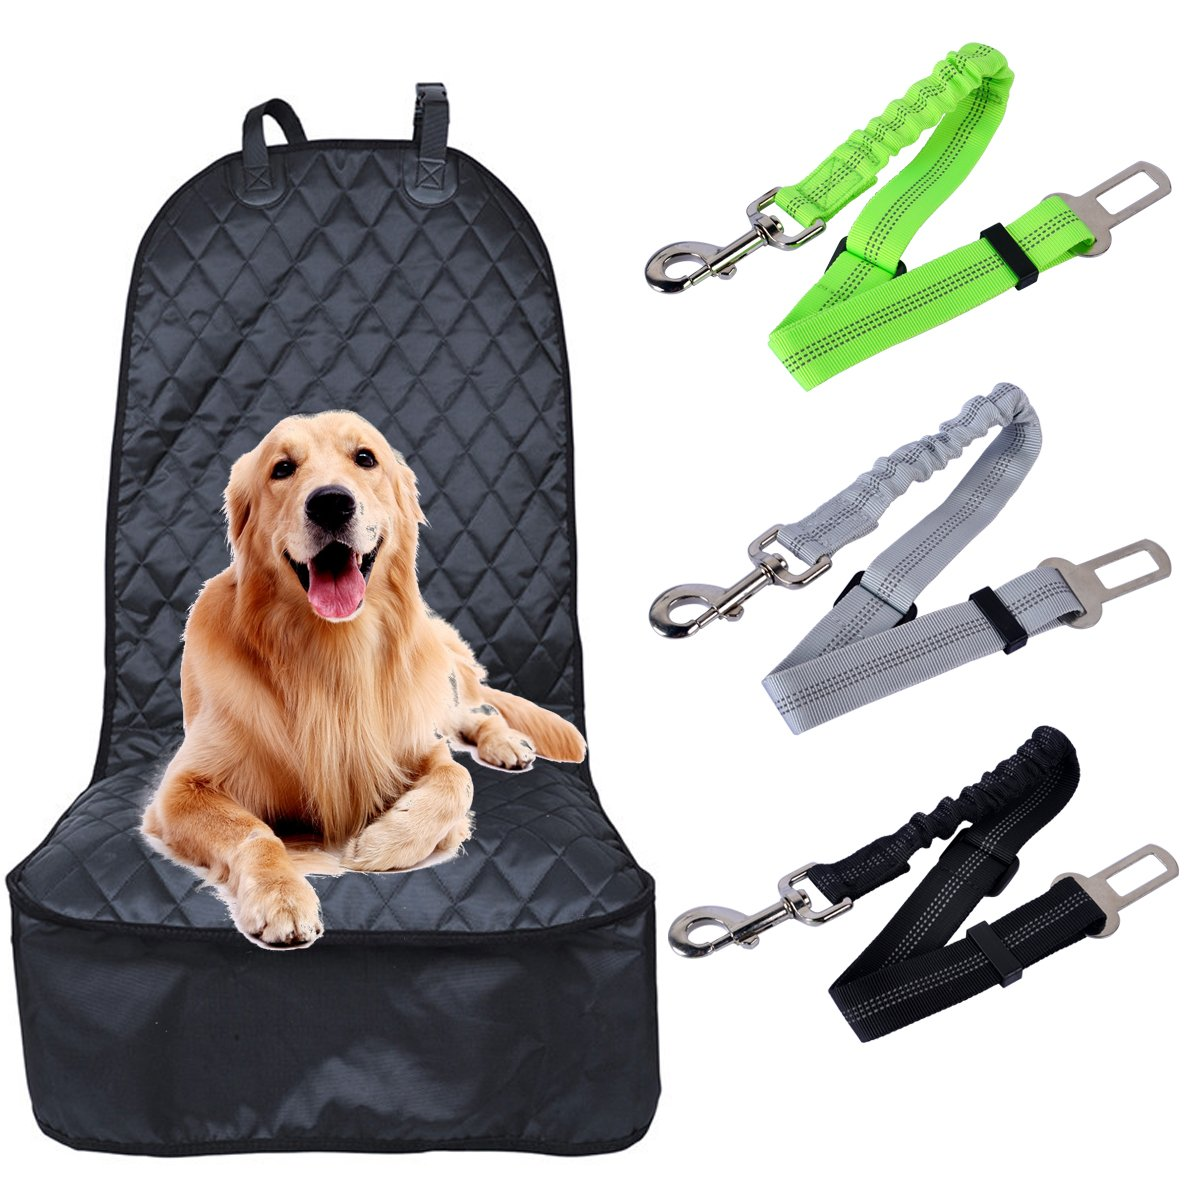 AutoEC Paw Pet Front Seat Cover, Dog Seat Protector, Waterproof Passenger Auto Seat Covers with 3 Pet Safety Seat Belts Adjustable for Cars, Trucks and SUV